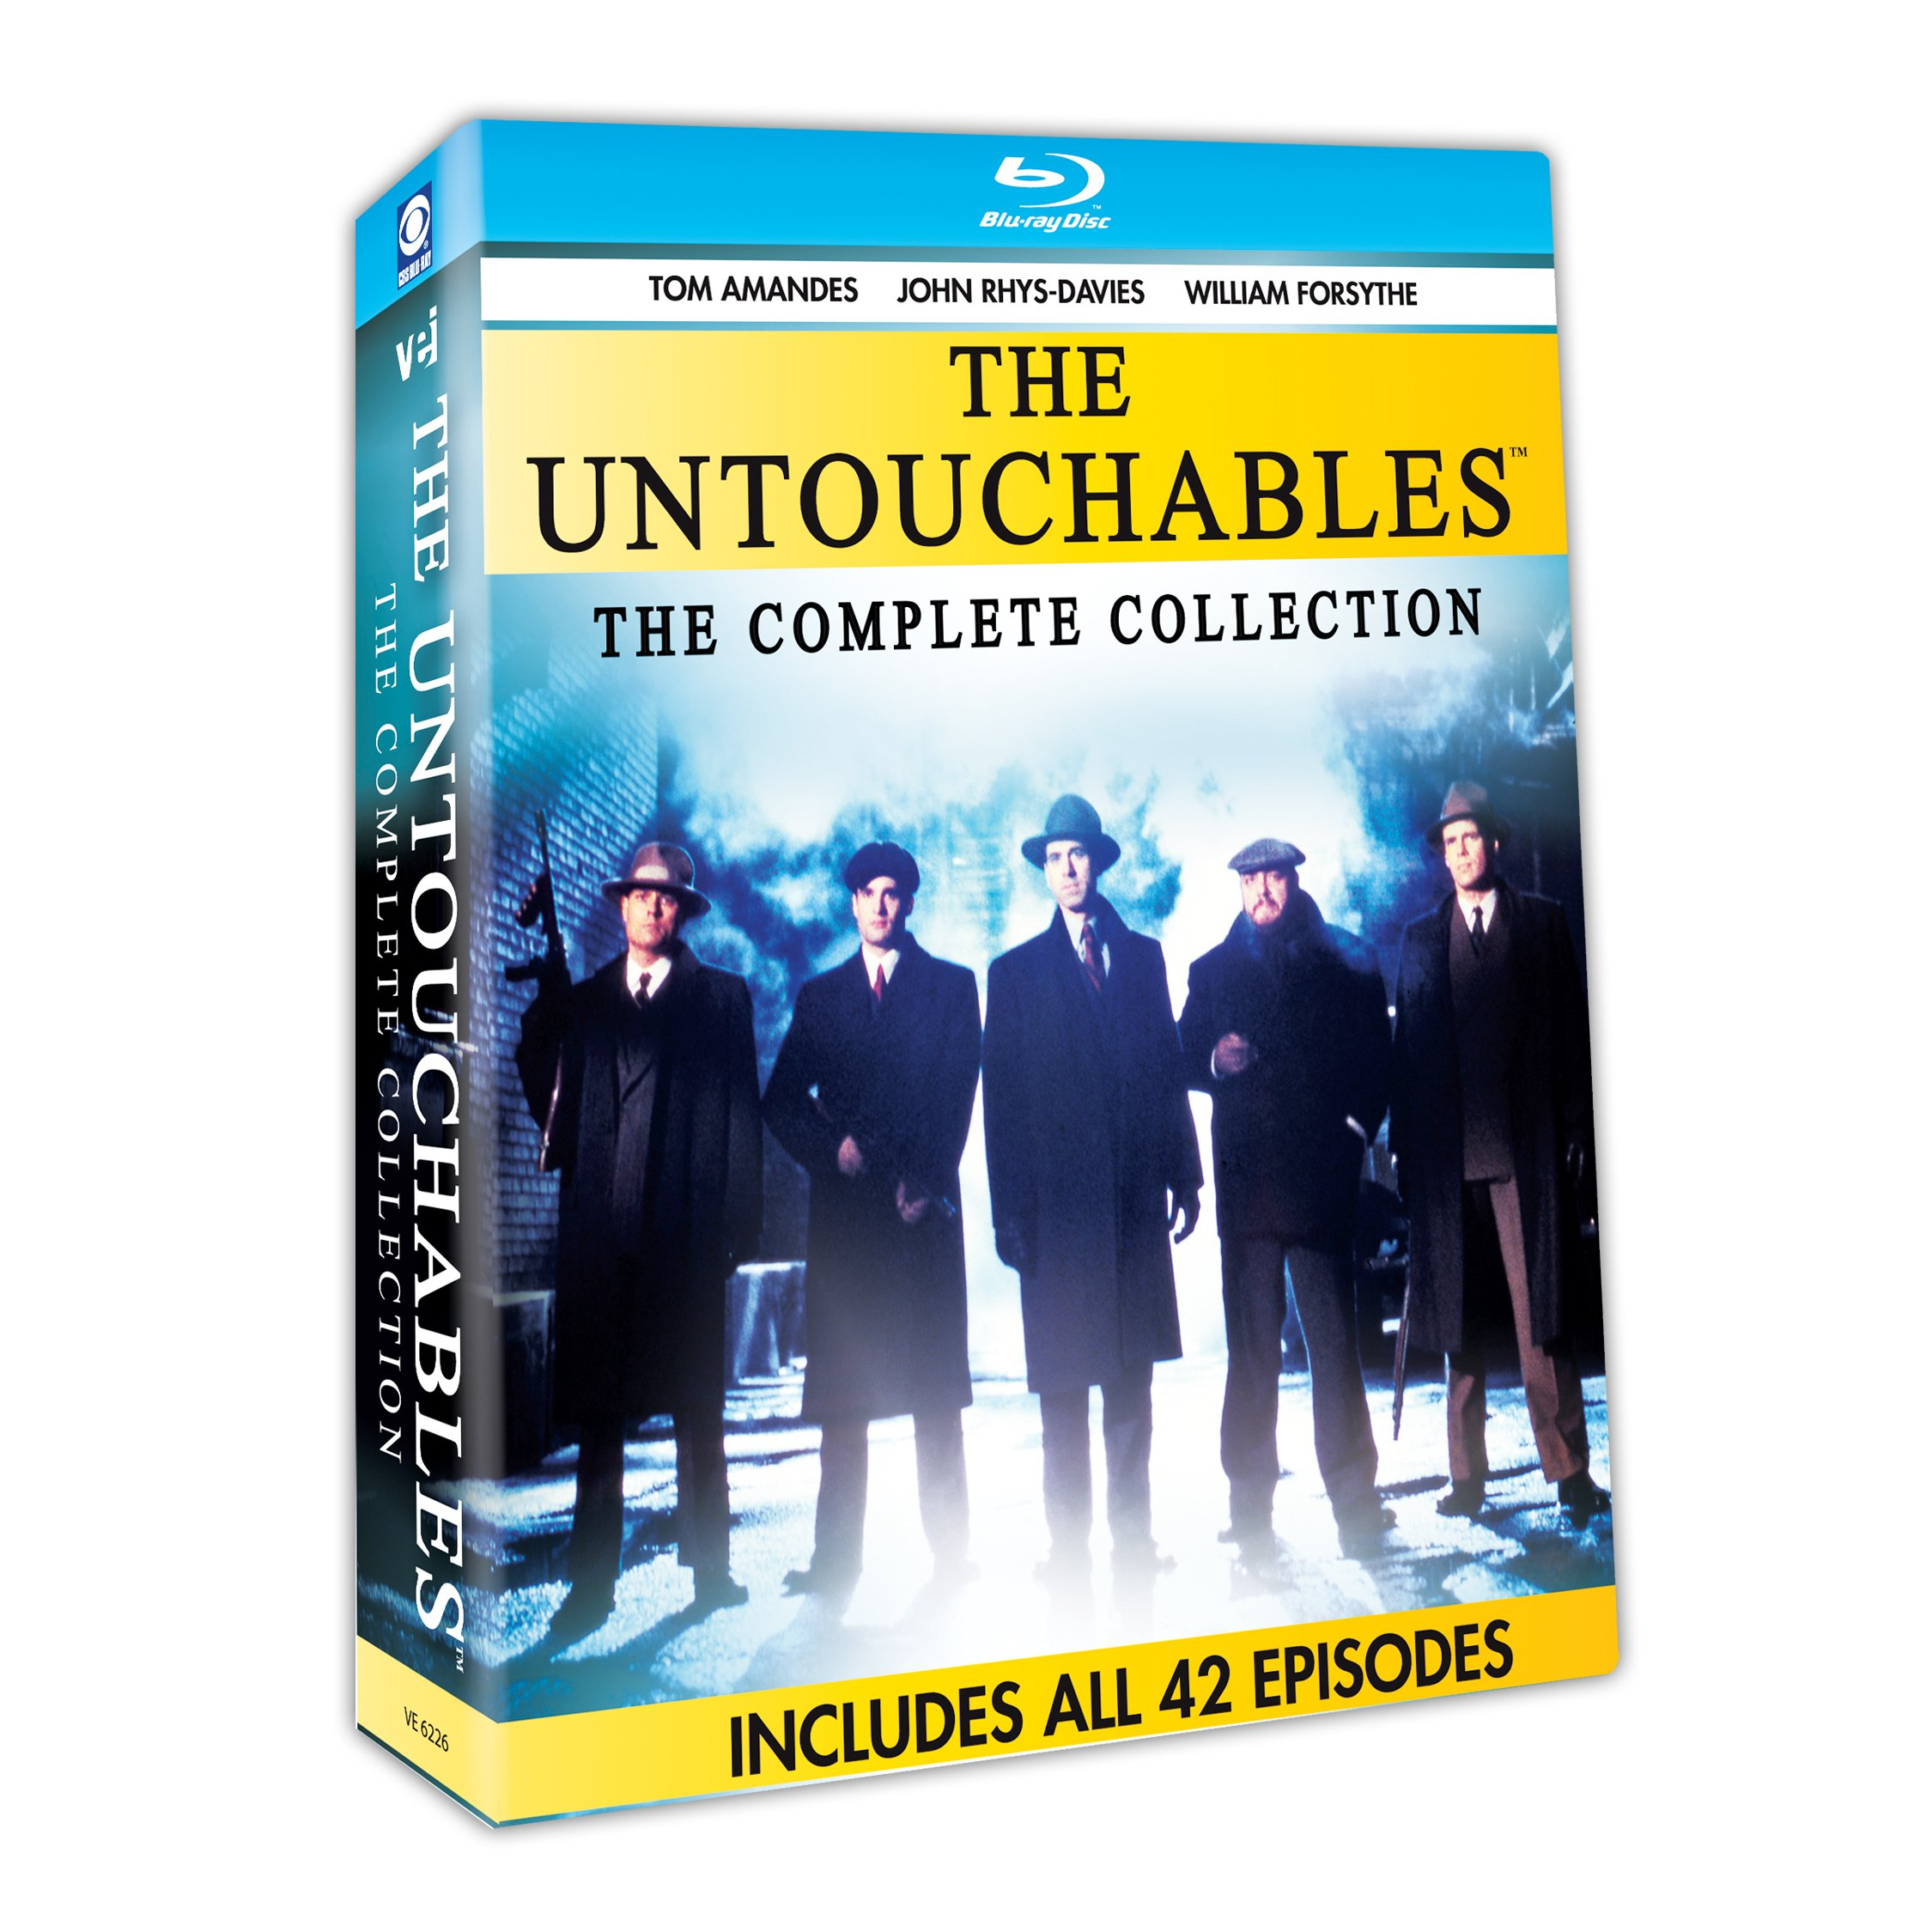 Blu-ray : The Untouchables: The Complete Collection (Boxed Set, 6PC)